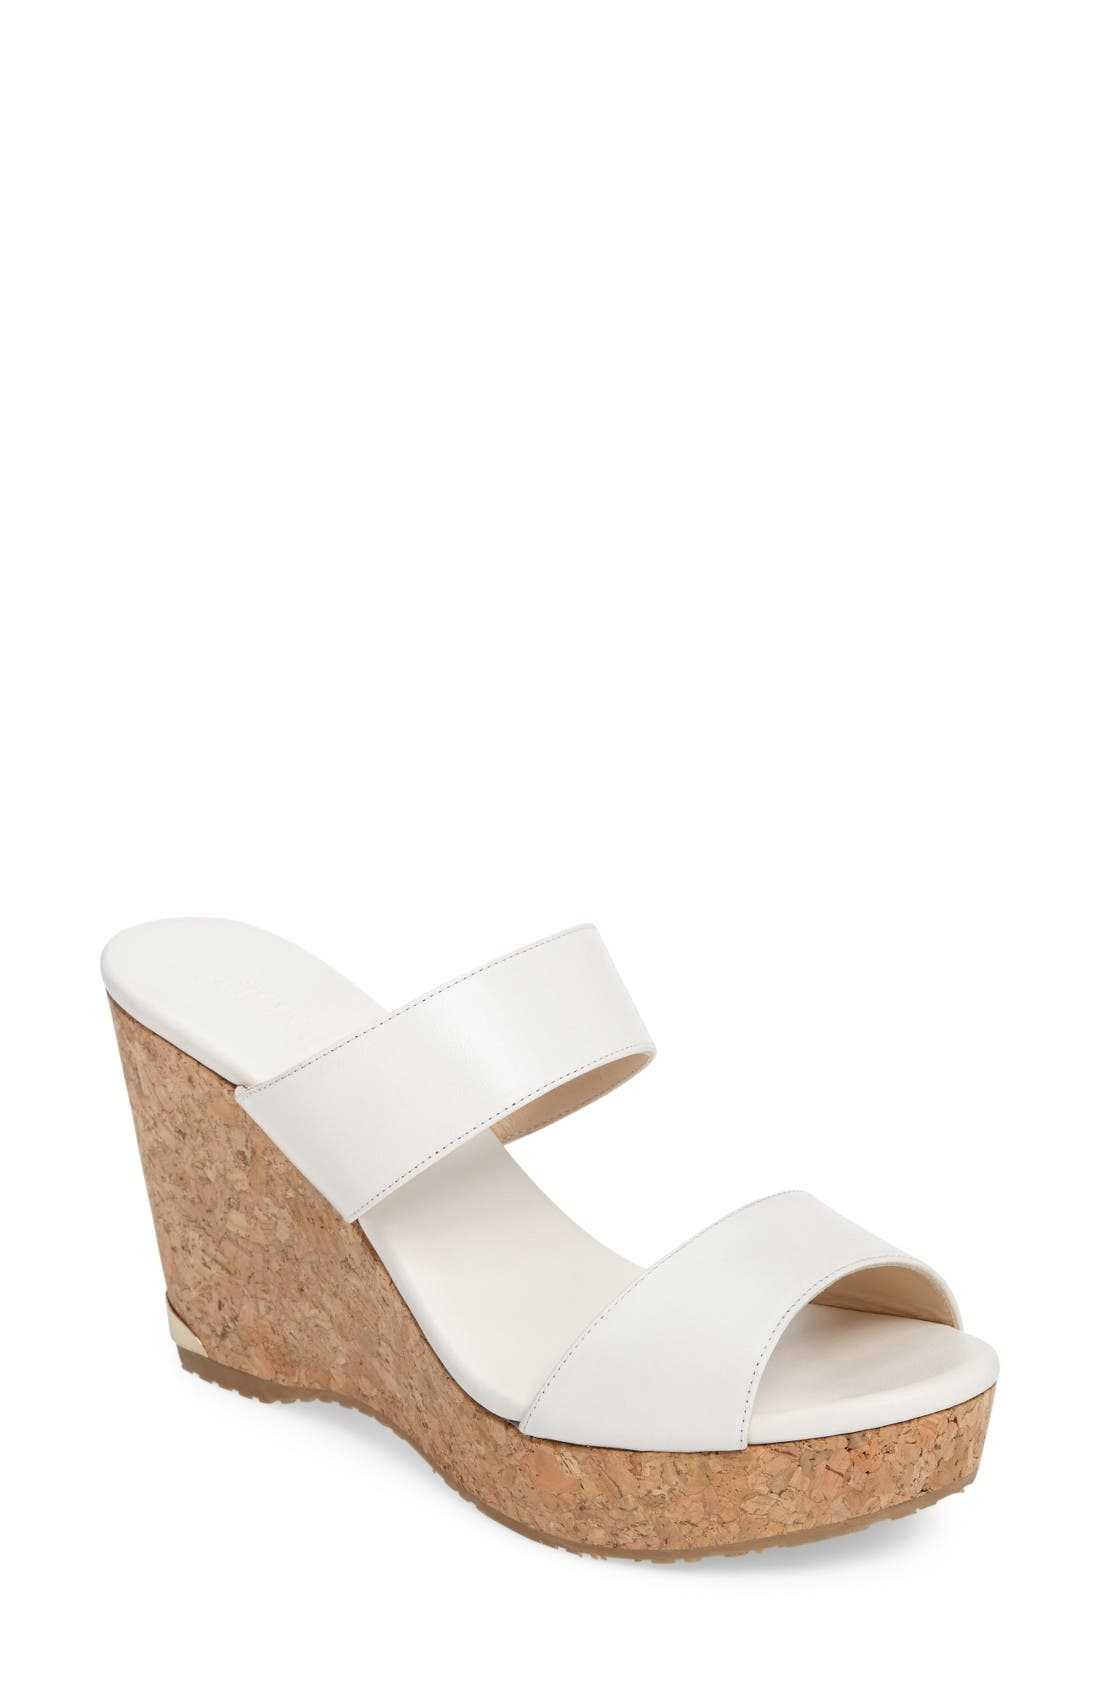 Alternate Image 1 Selected - Jimmy Choo Parker Wedge Sandal (Women)